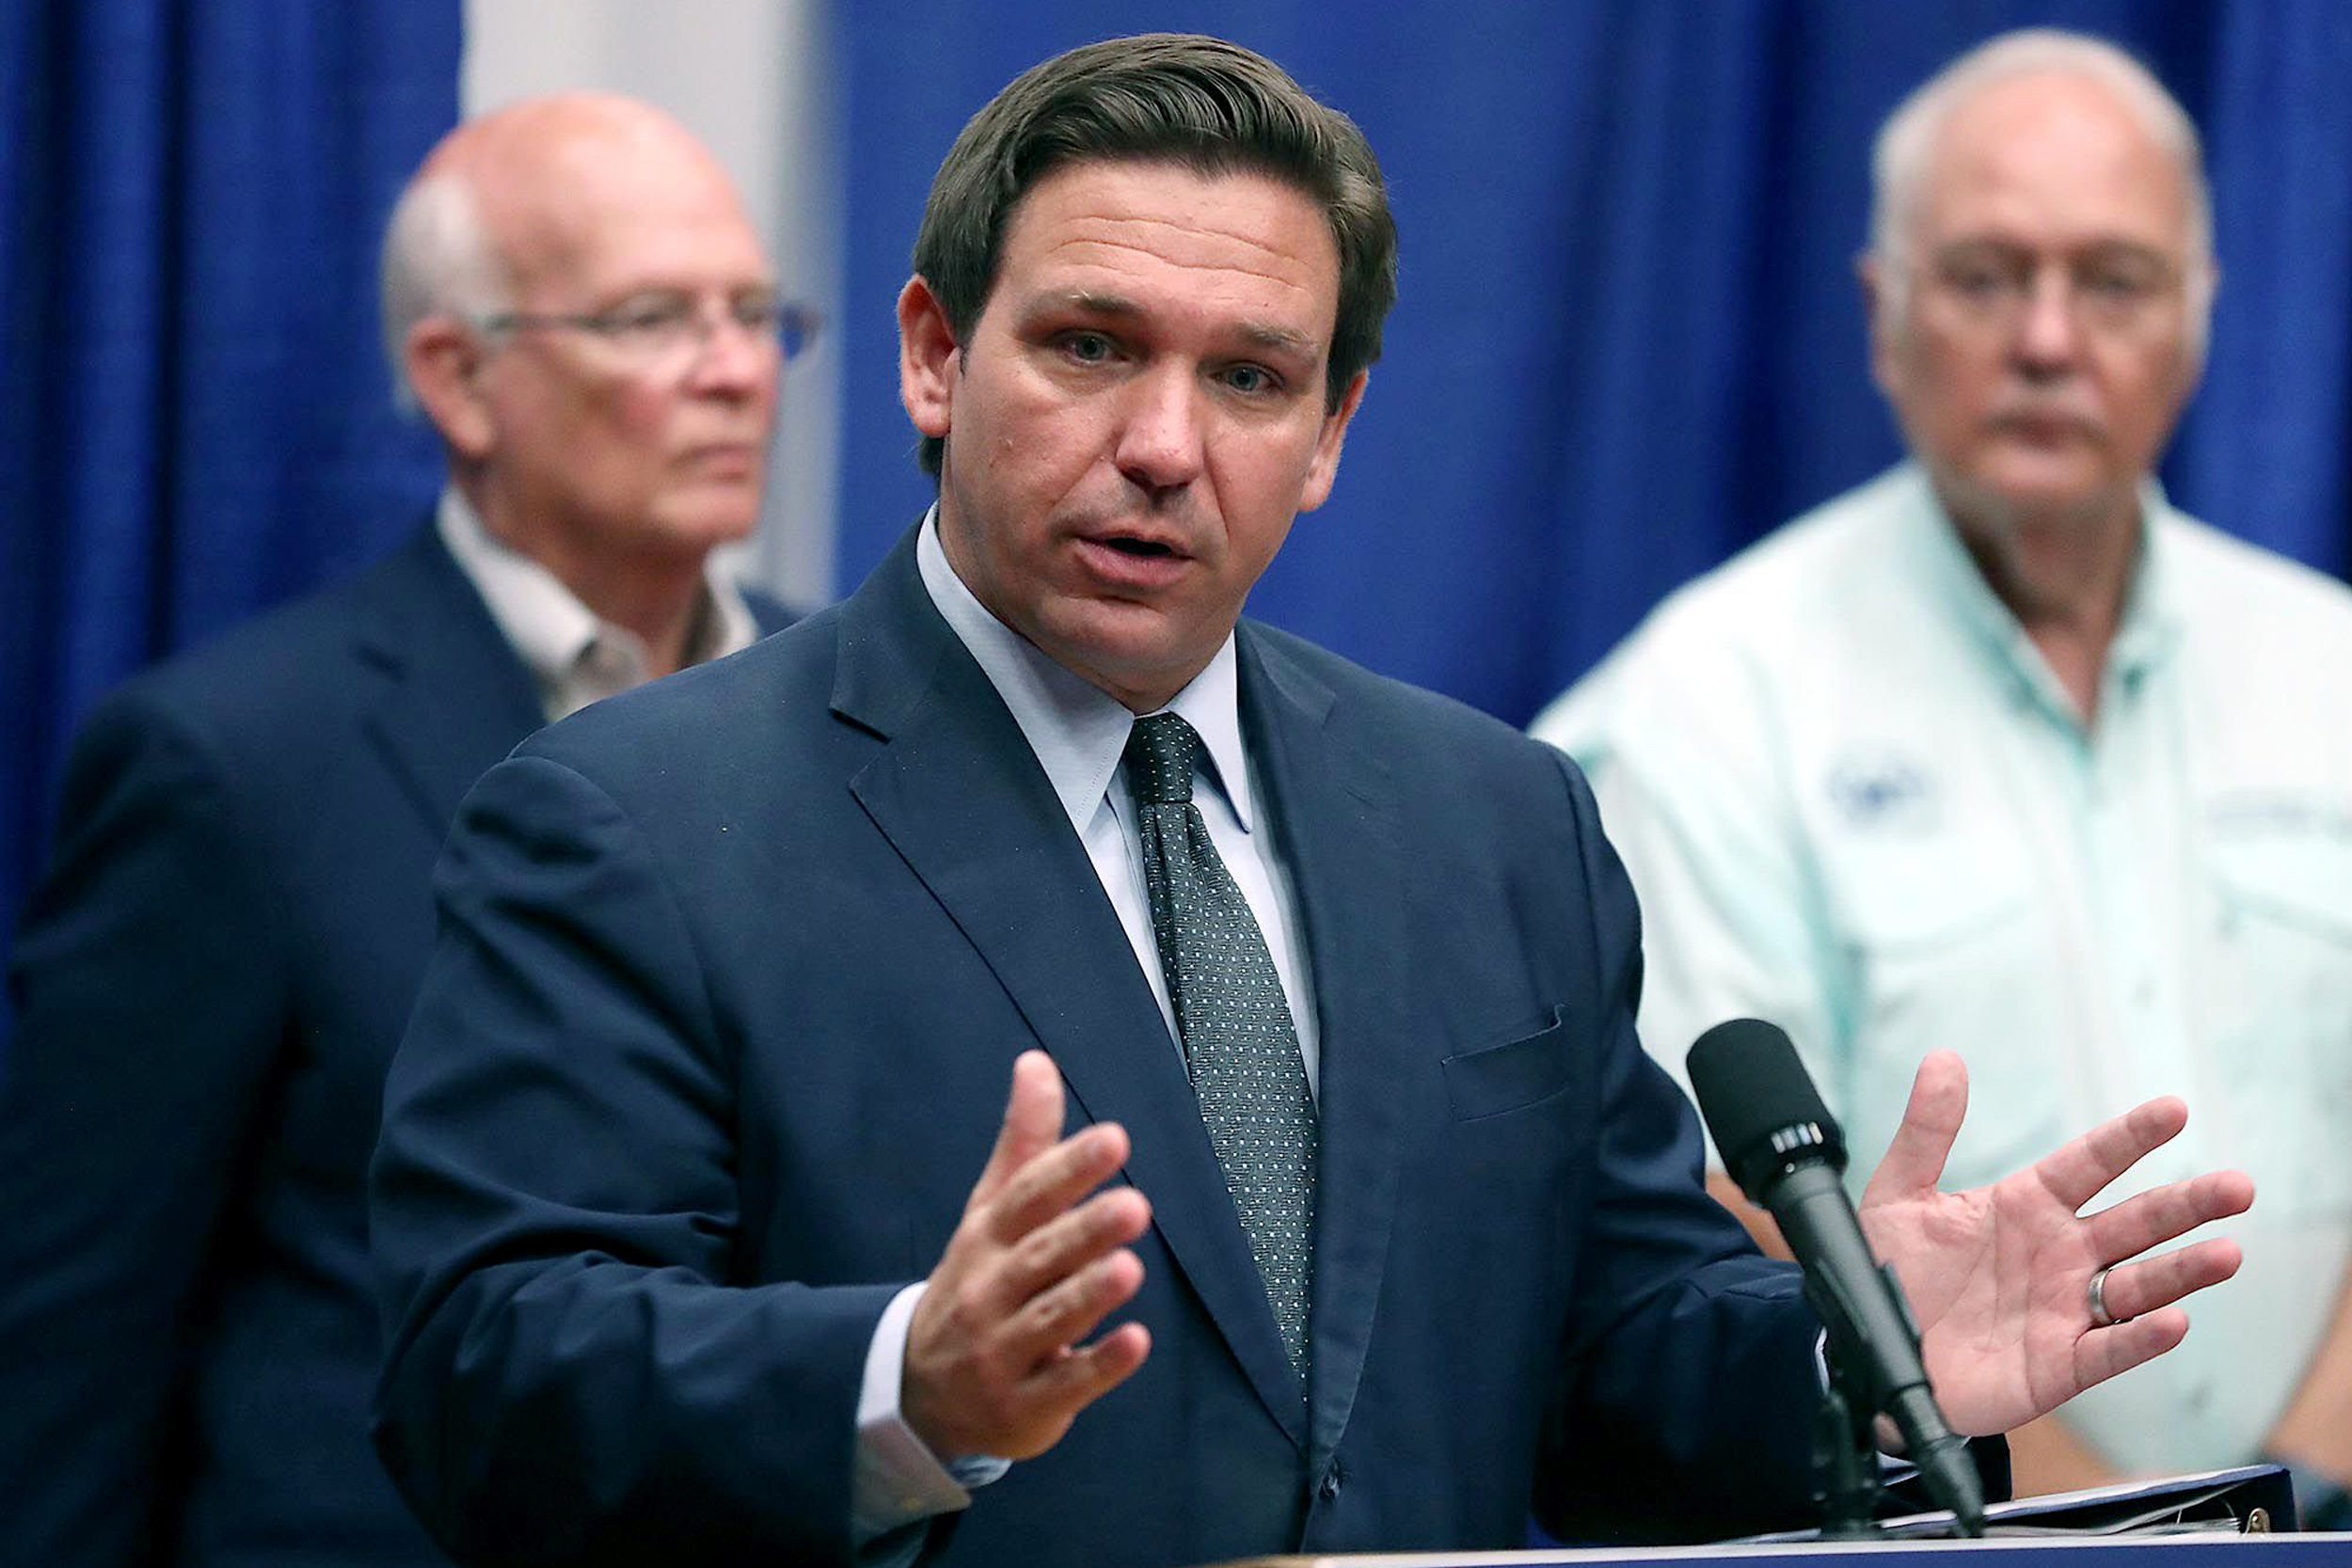 DeSantis Warns Localities They Face $5,000 Fines Per Occurrence for COVID Vaccine Mandates